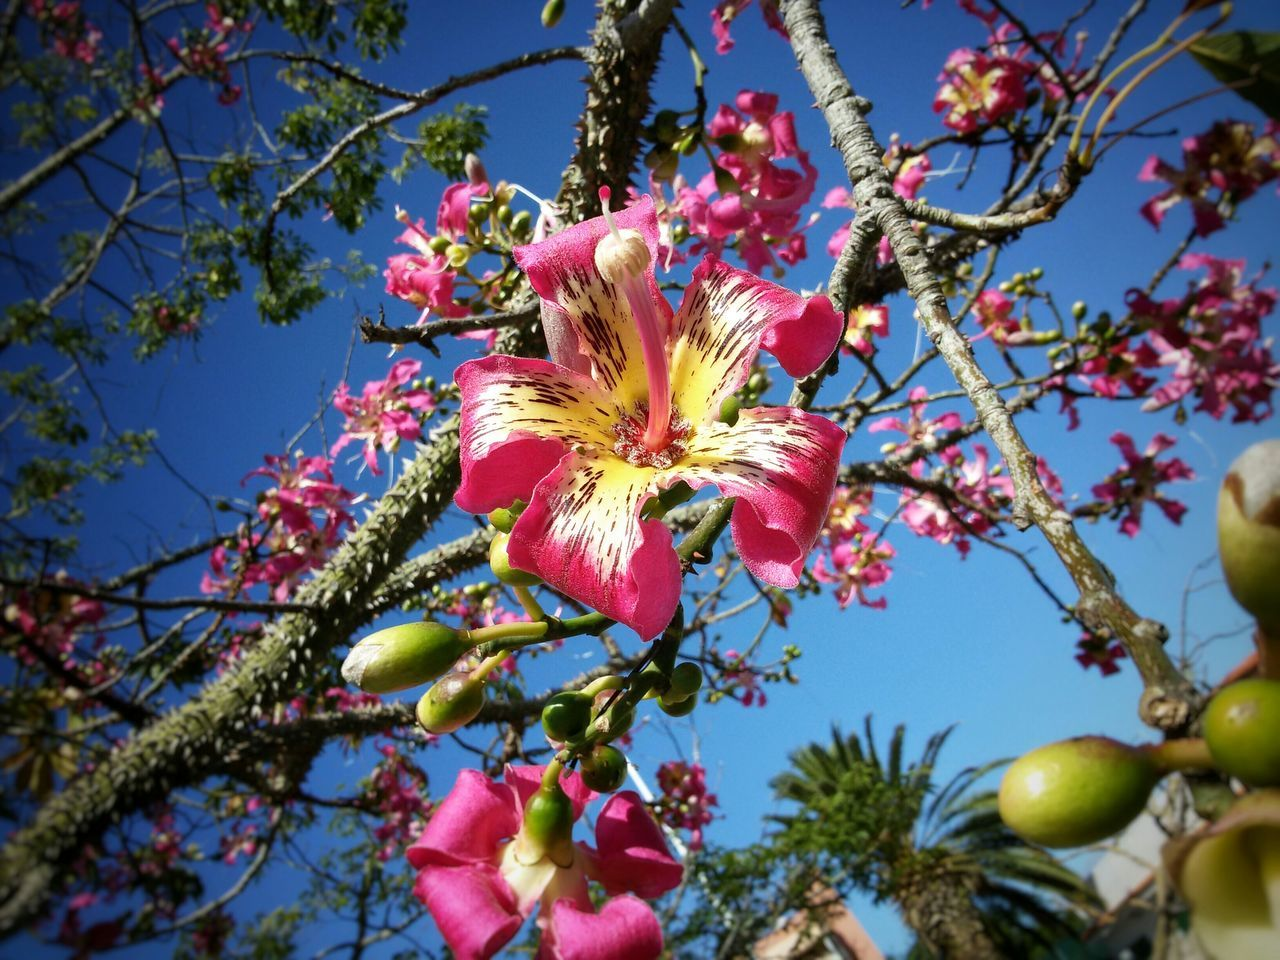 flower, low angle view, tree, growth, branch, fragility, beauty in nature, nature, freshness, blossom, magnolia, springtime, day, no people, petal, outdoors, flower head, leaf, sky, close-up, blooming, clear sky